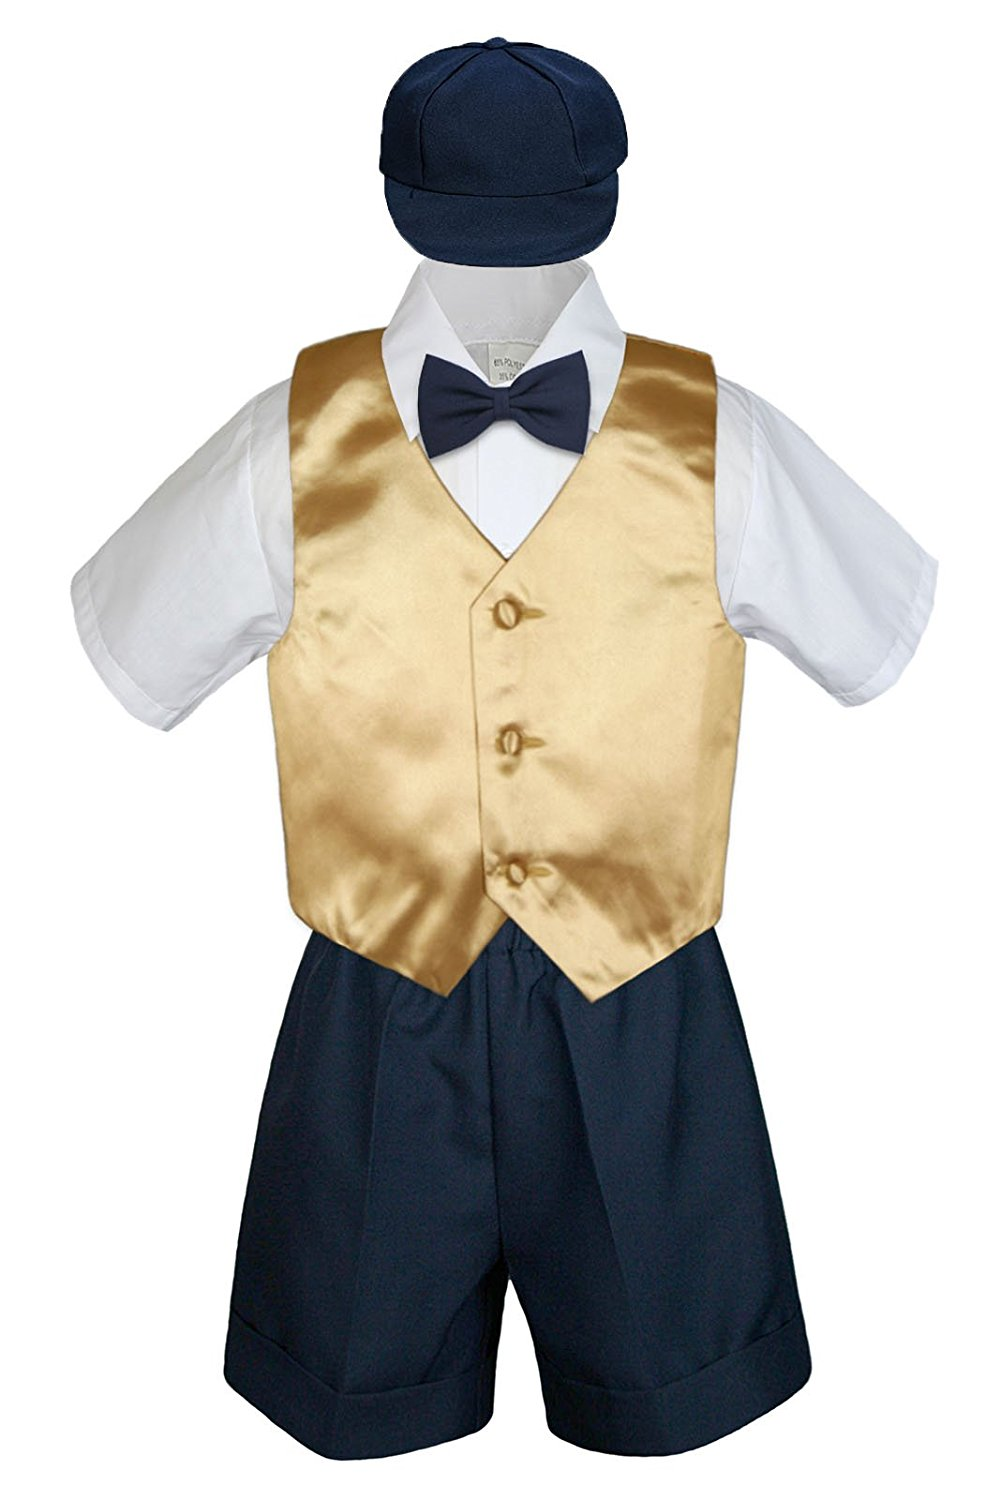 XL: Leadertux 3pc Formal Baby Toddler Boys Black Bow Tie Brown Pants Set Outfits S-7 18-24 months